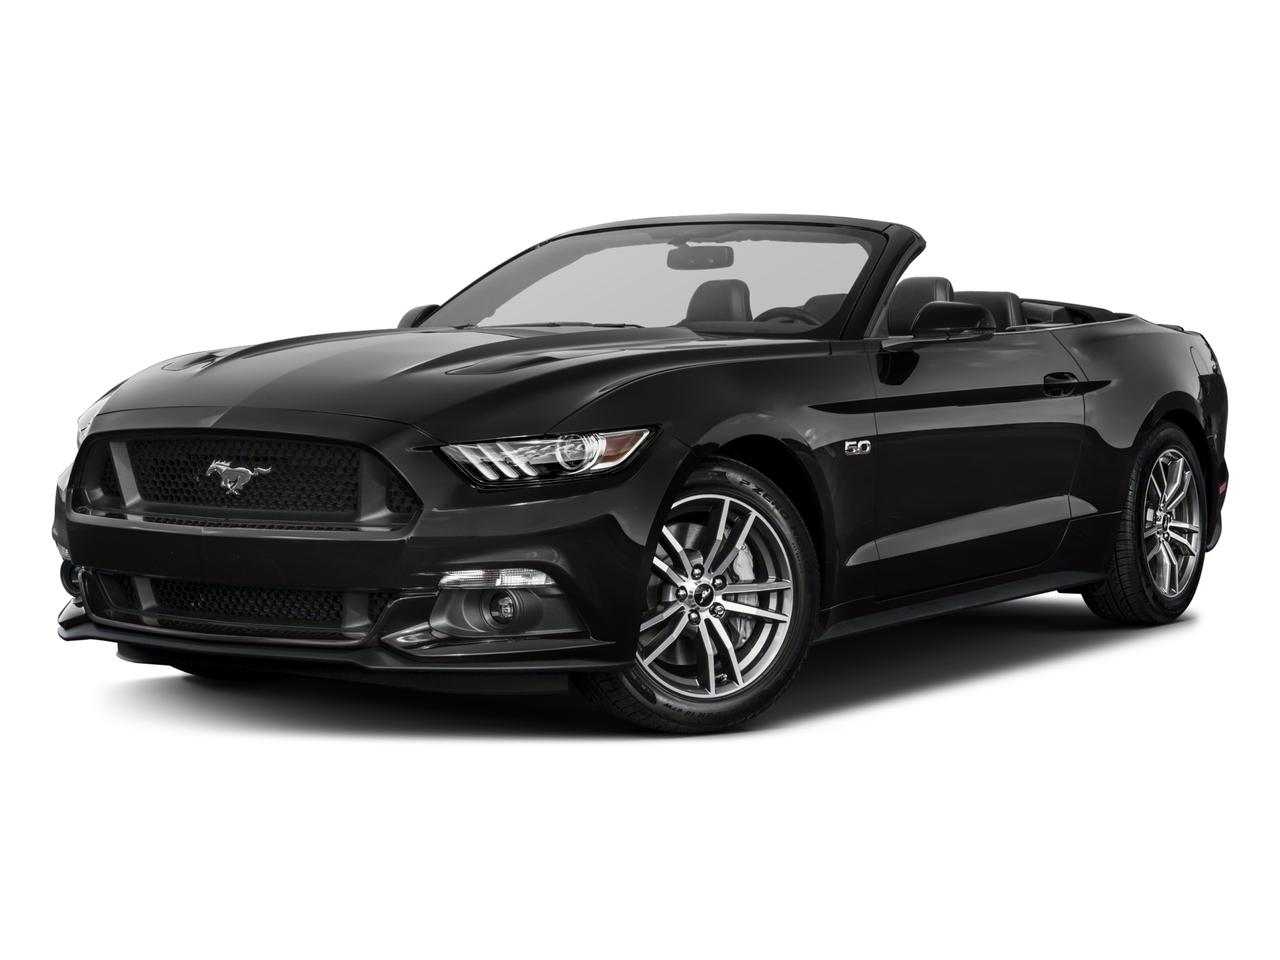 2017 Ford Mustang Vehicle Photo in Akron, OH 44312